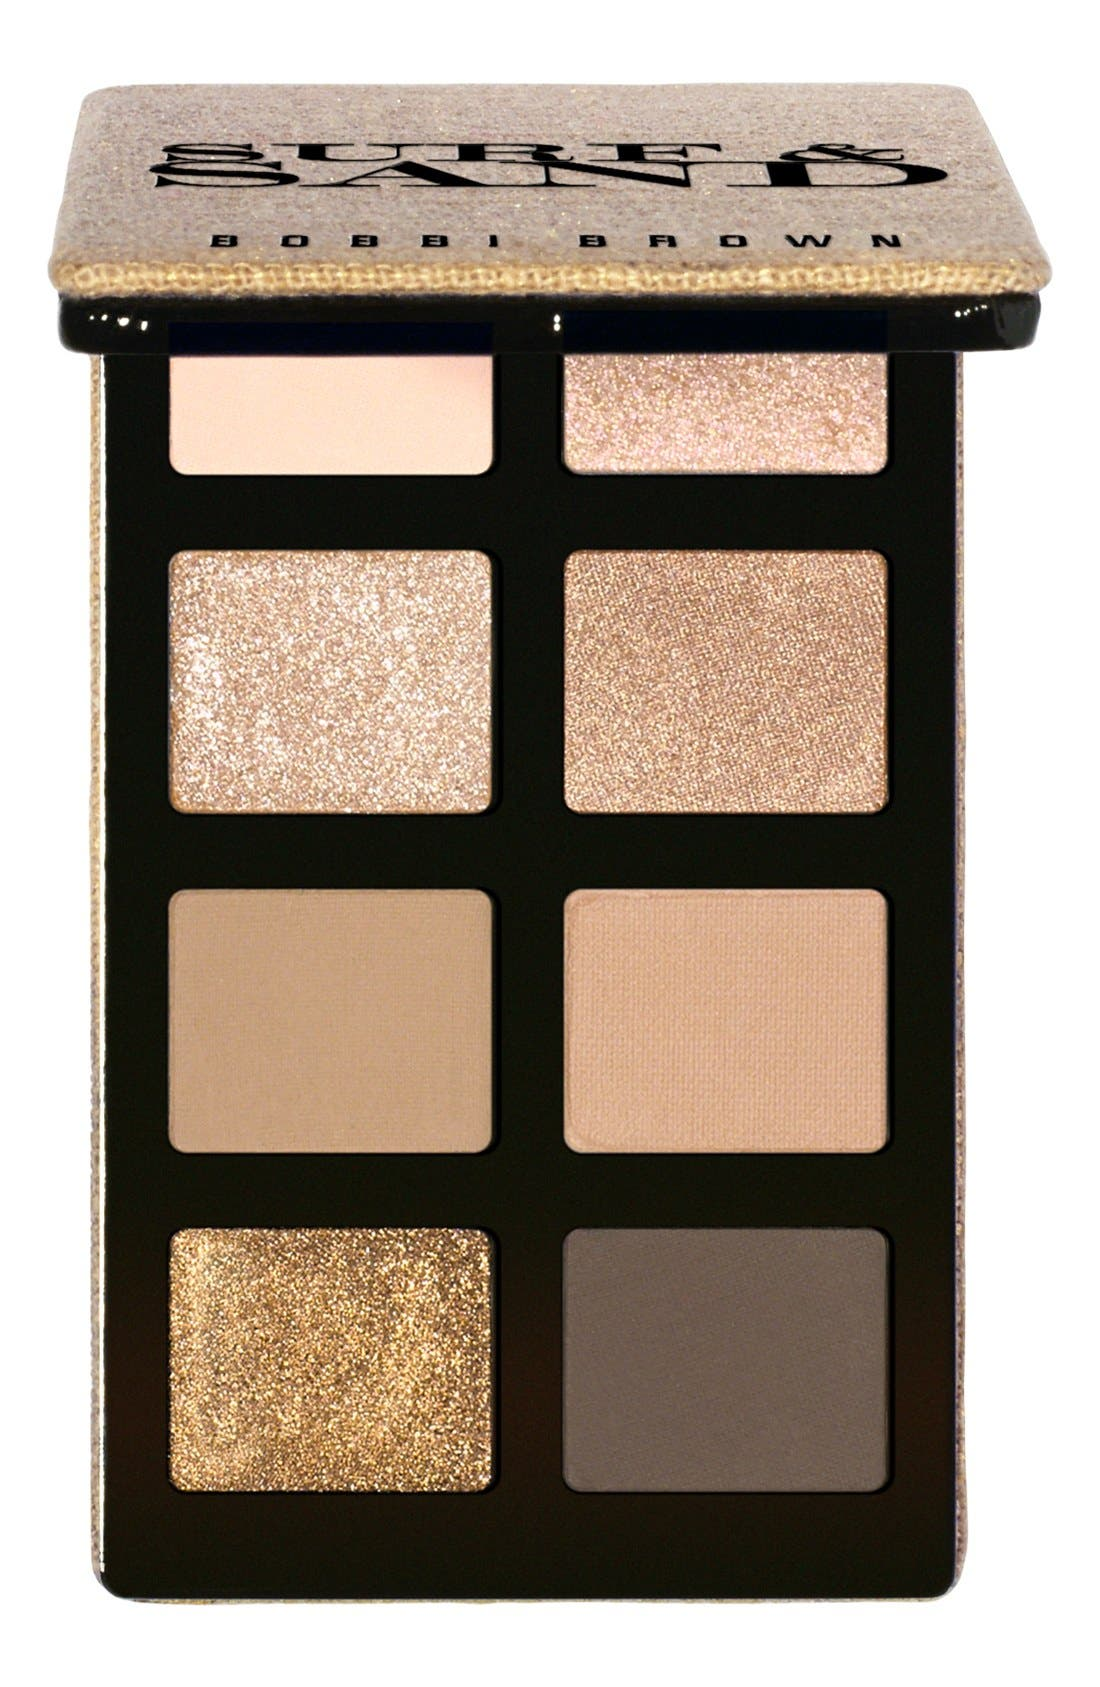 'Surf & Sand - Surf' Eyeshadow Palette,                             Main thumbnail 1, color,                             250